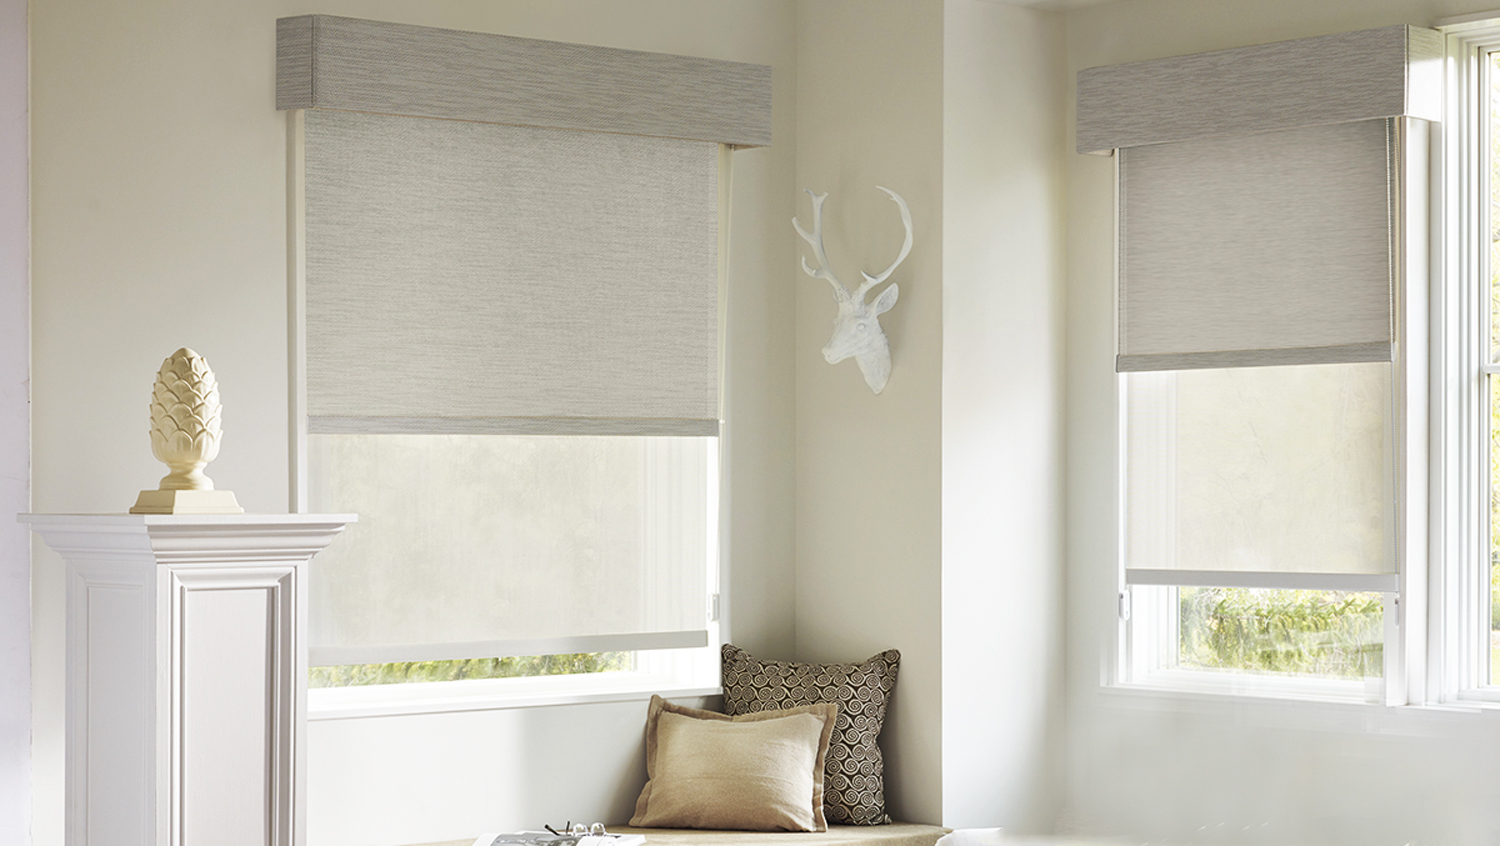 Buy hunter douglas window treatments charleston seabrook for Where to buy window treatments